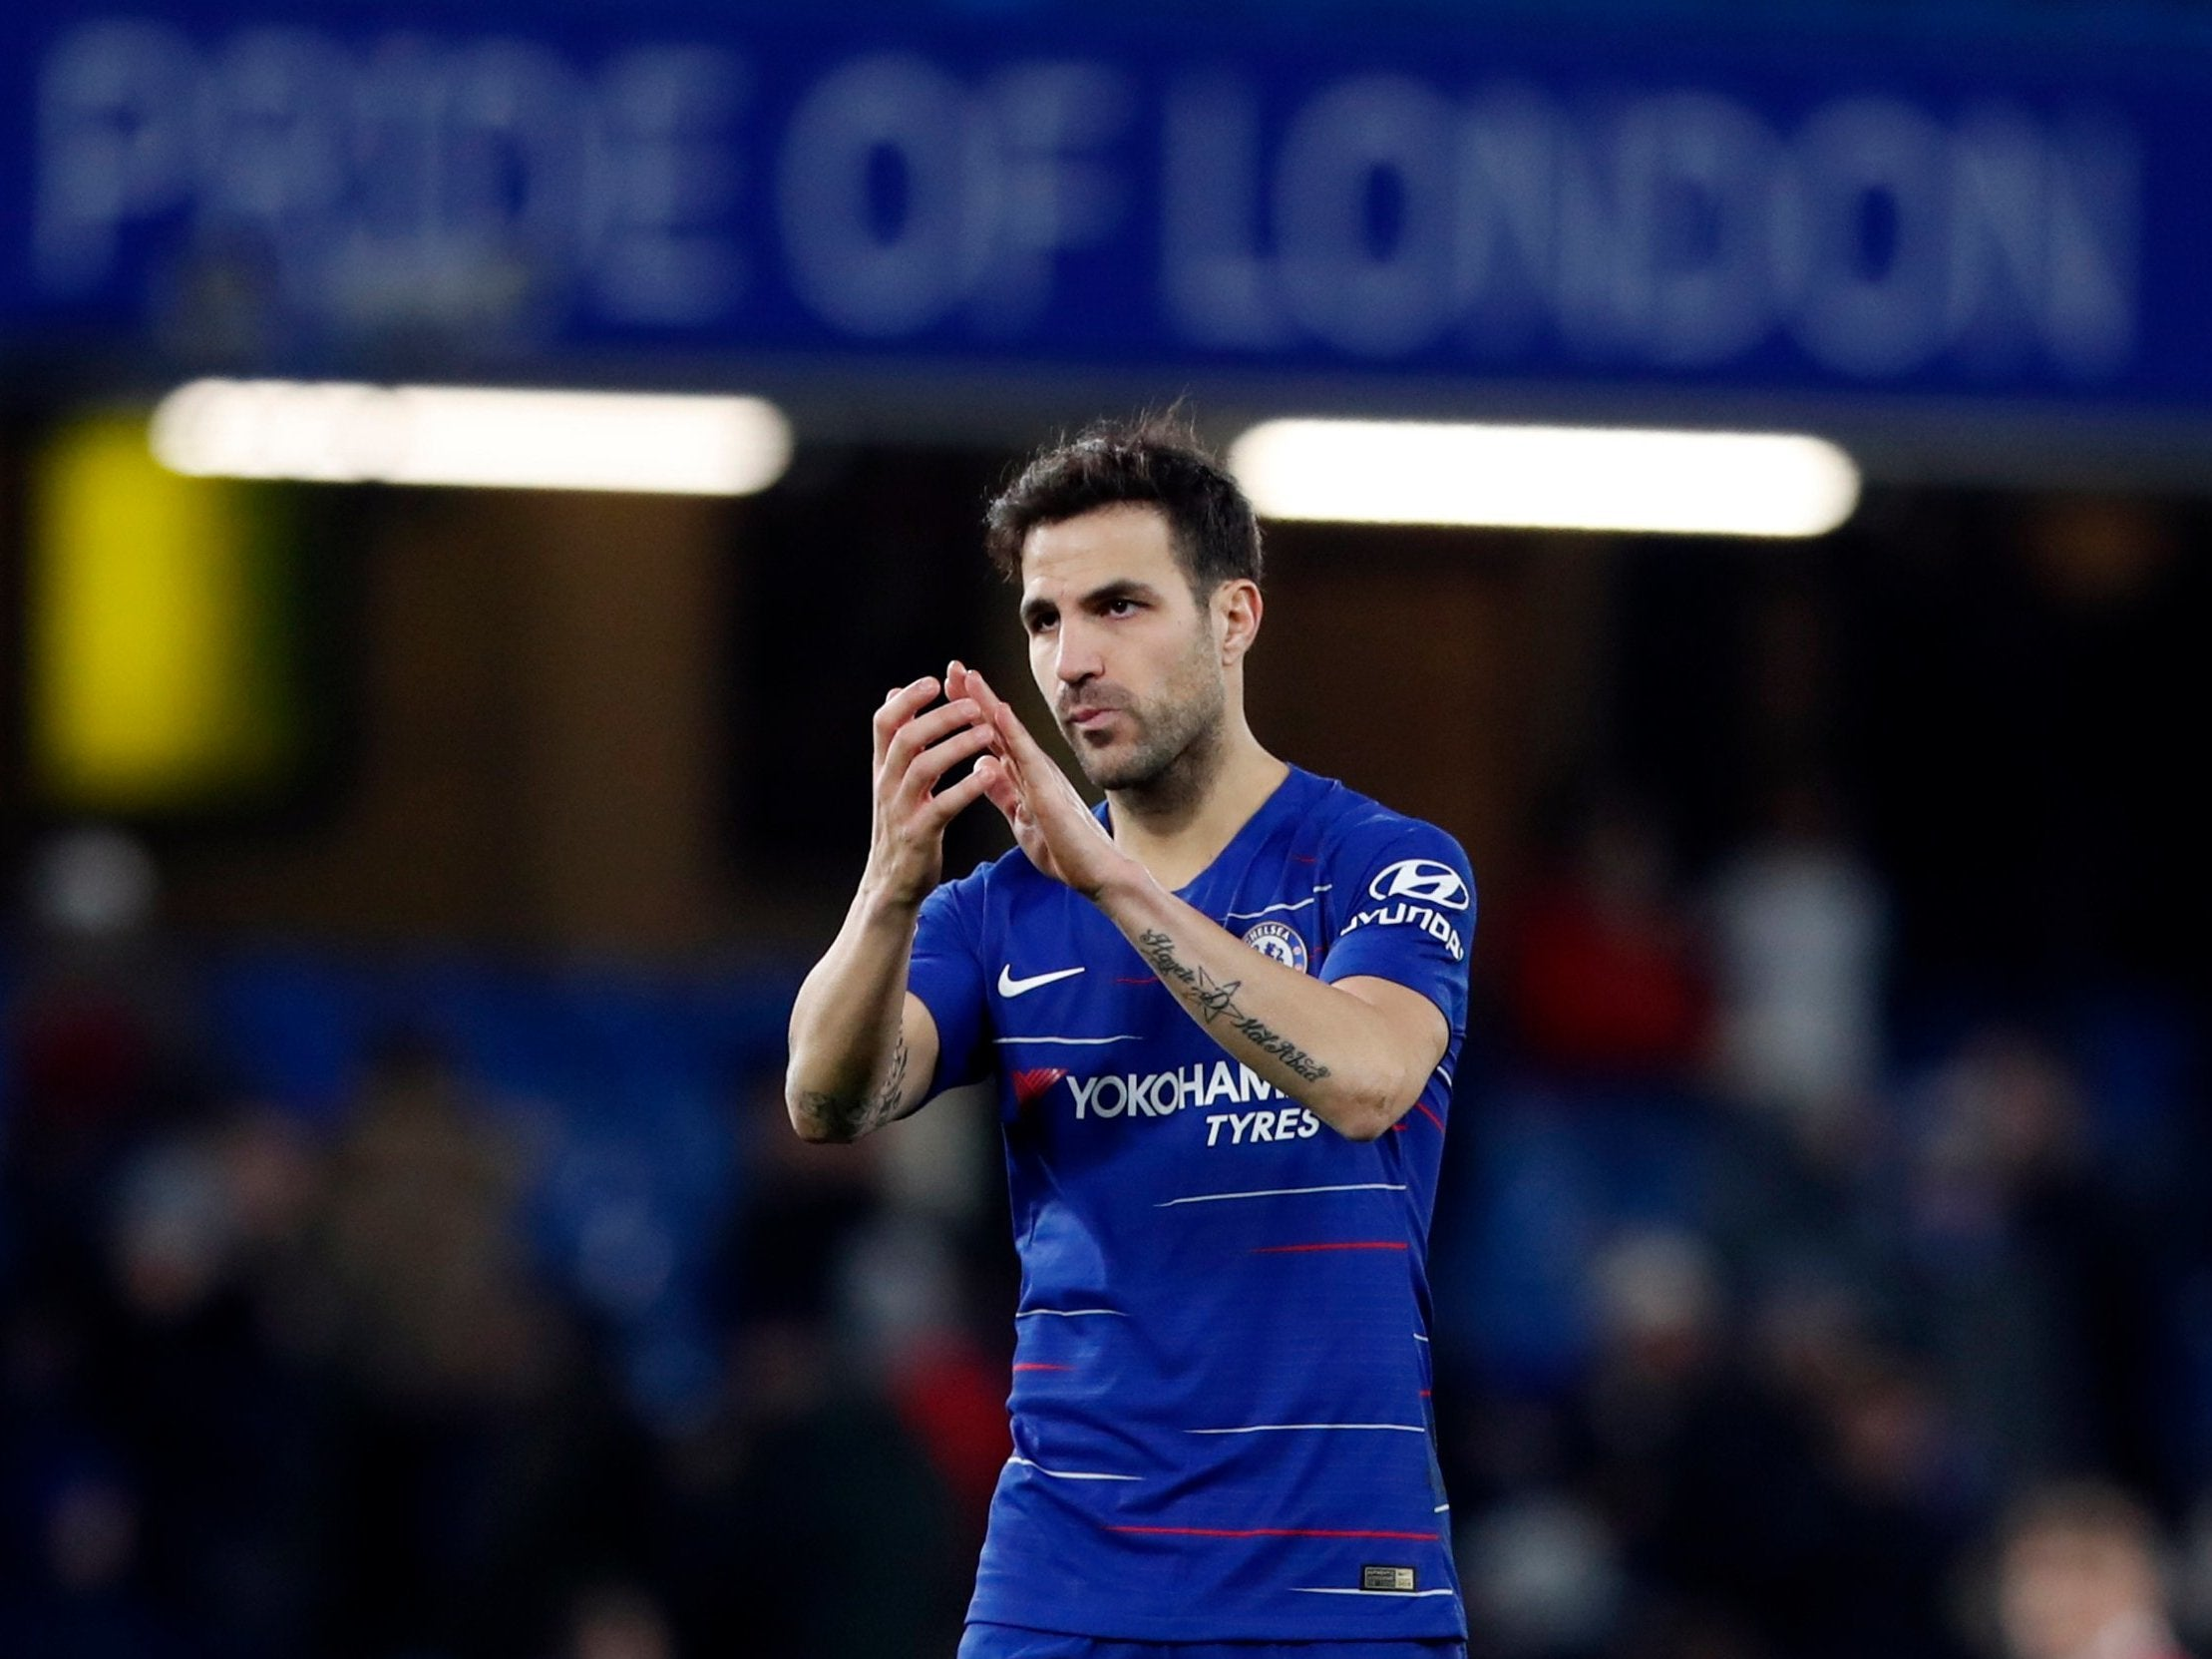 Chelsea transfer news: Cesc Fabregas signs for Monaco on a three-and-a-half year deal